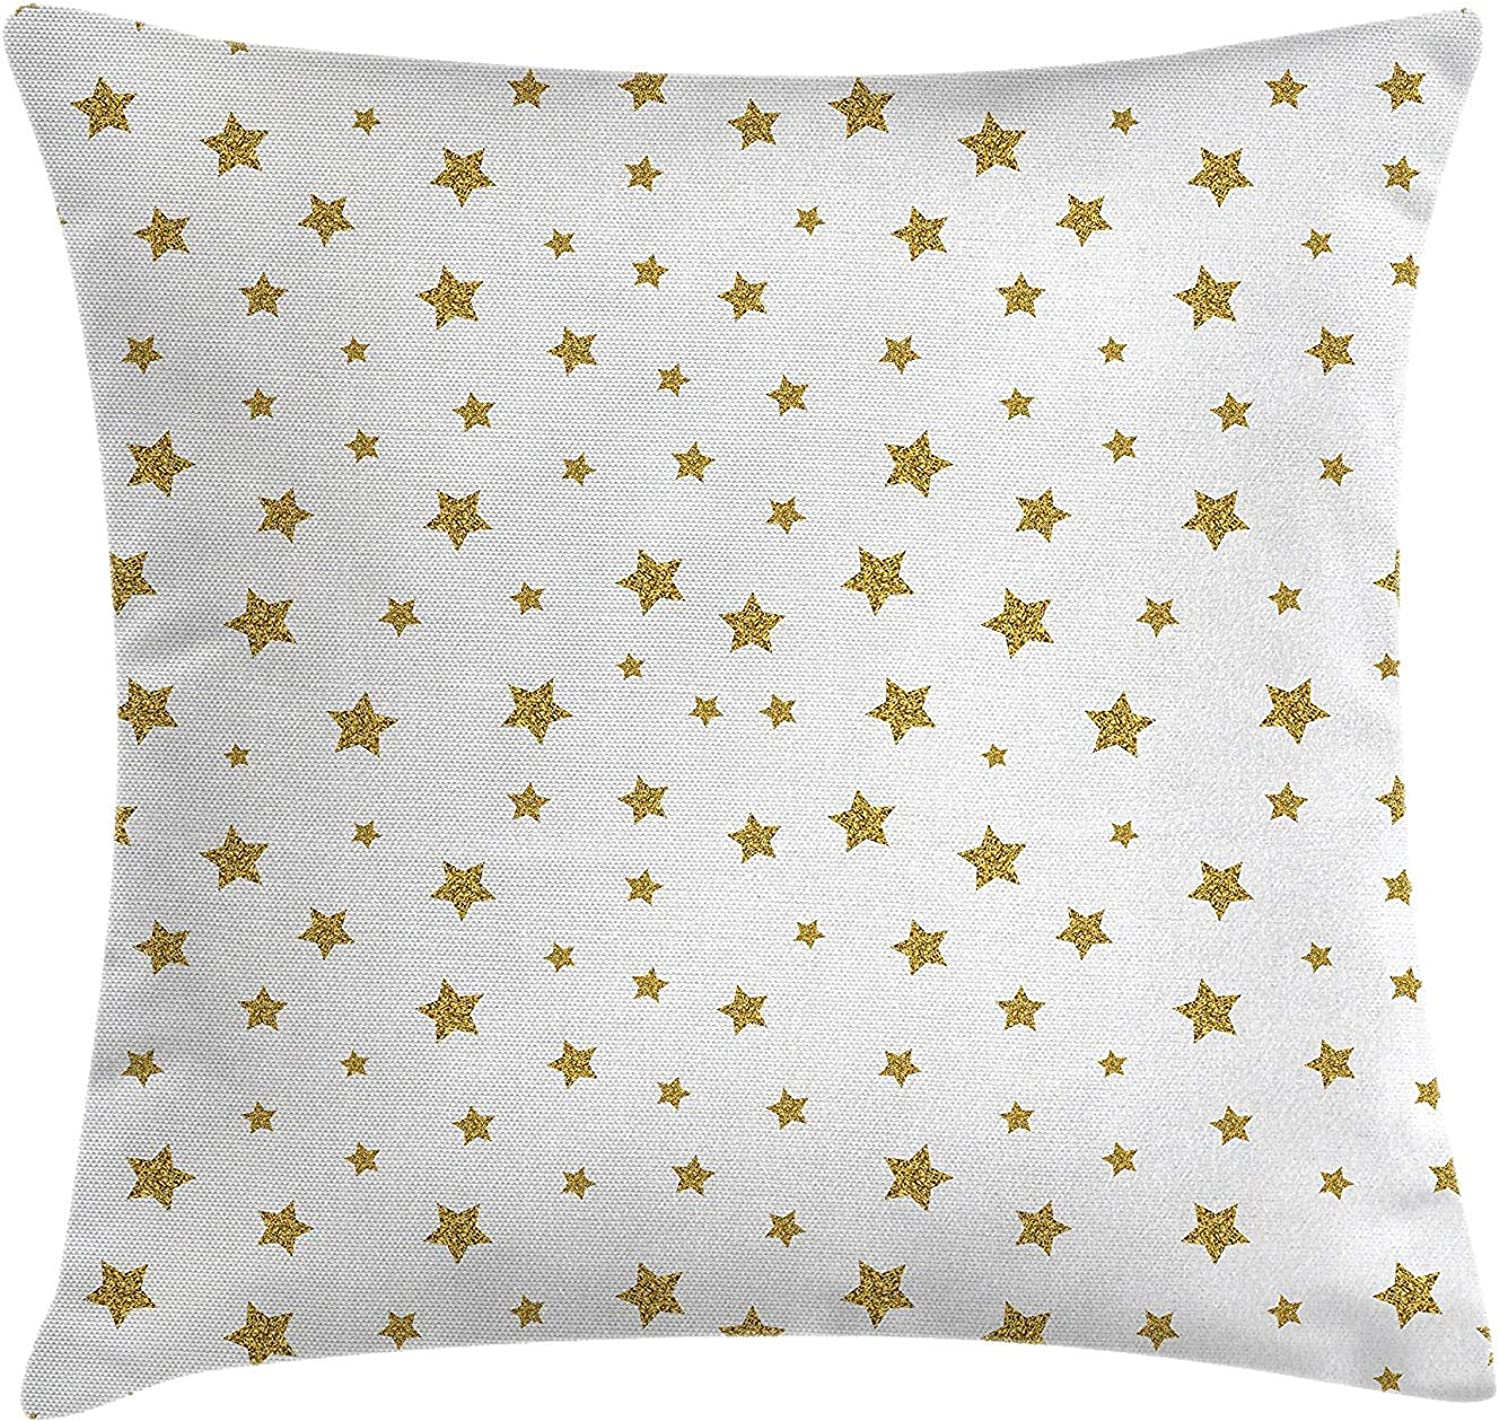 Anzona Star Throw Pillow Cushion Cover,20 x 59 inch Two Sides, Stars Pattern Illustration Creative Stylish Birthday Bachelorette Theme Print,Pillow Sham Cases for Couch Sofa Chair Cushion